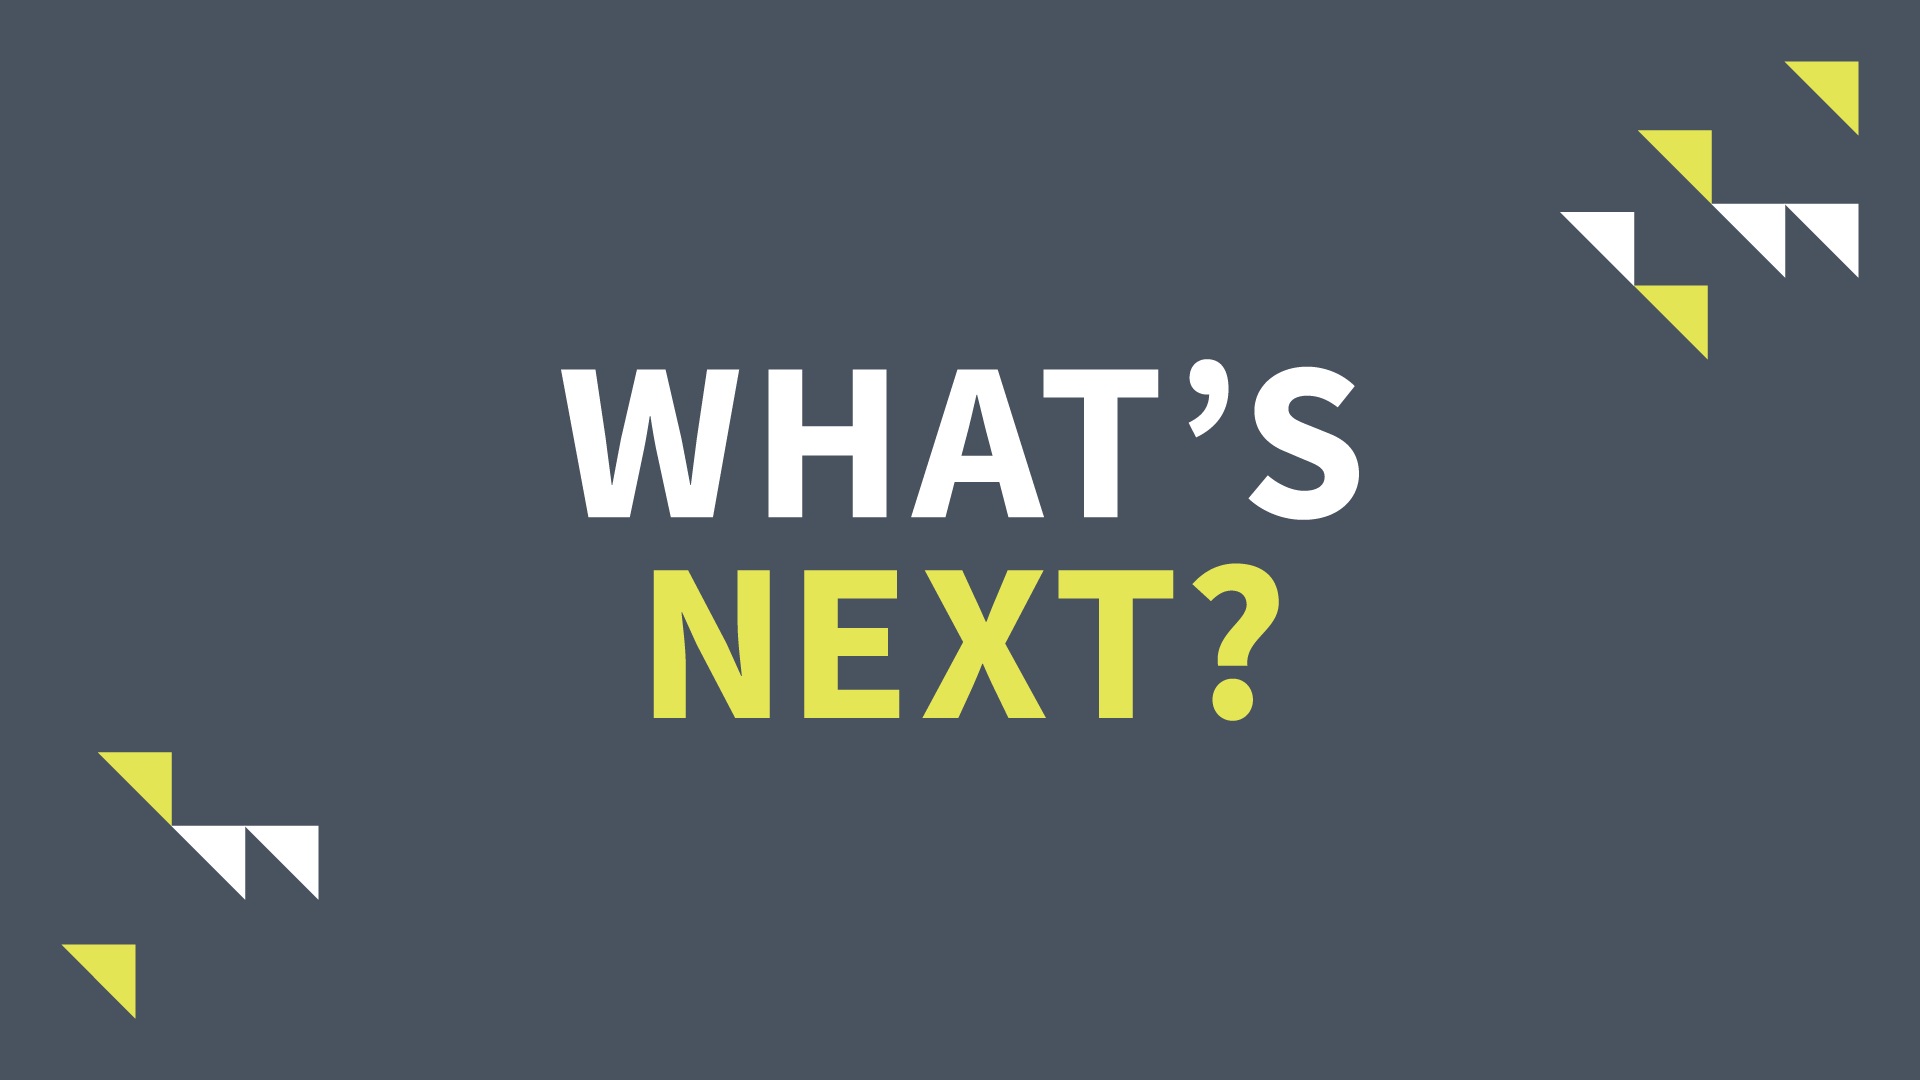 Whats Next_Digital Graphics_SS_1920x1080.png